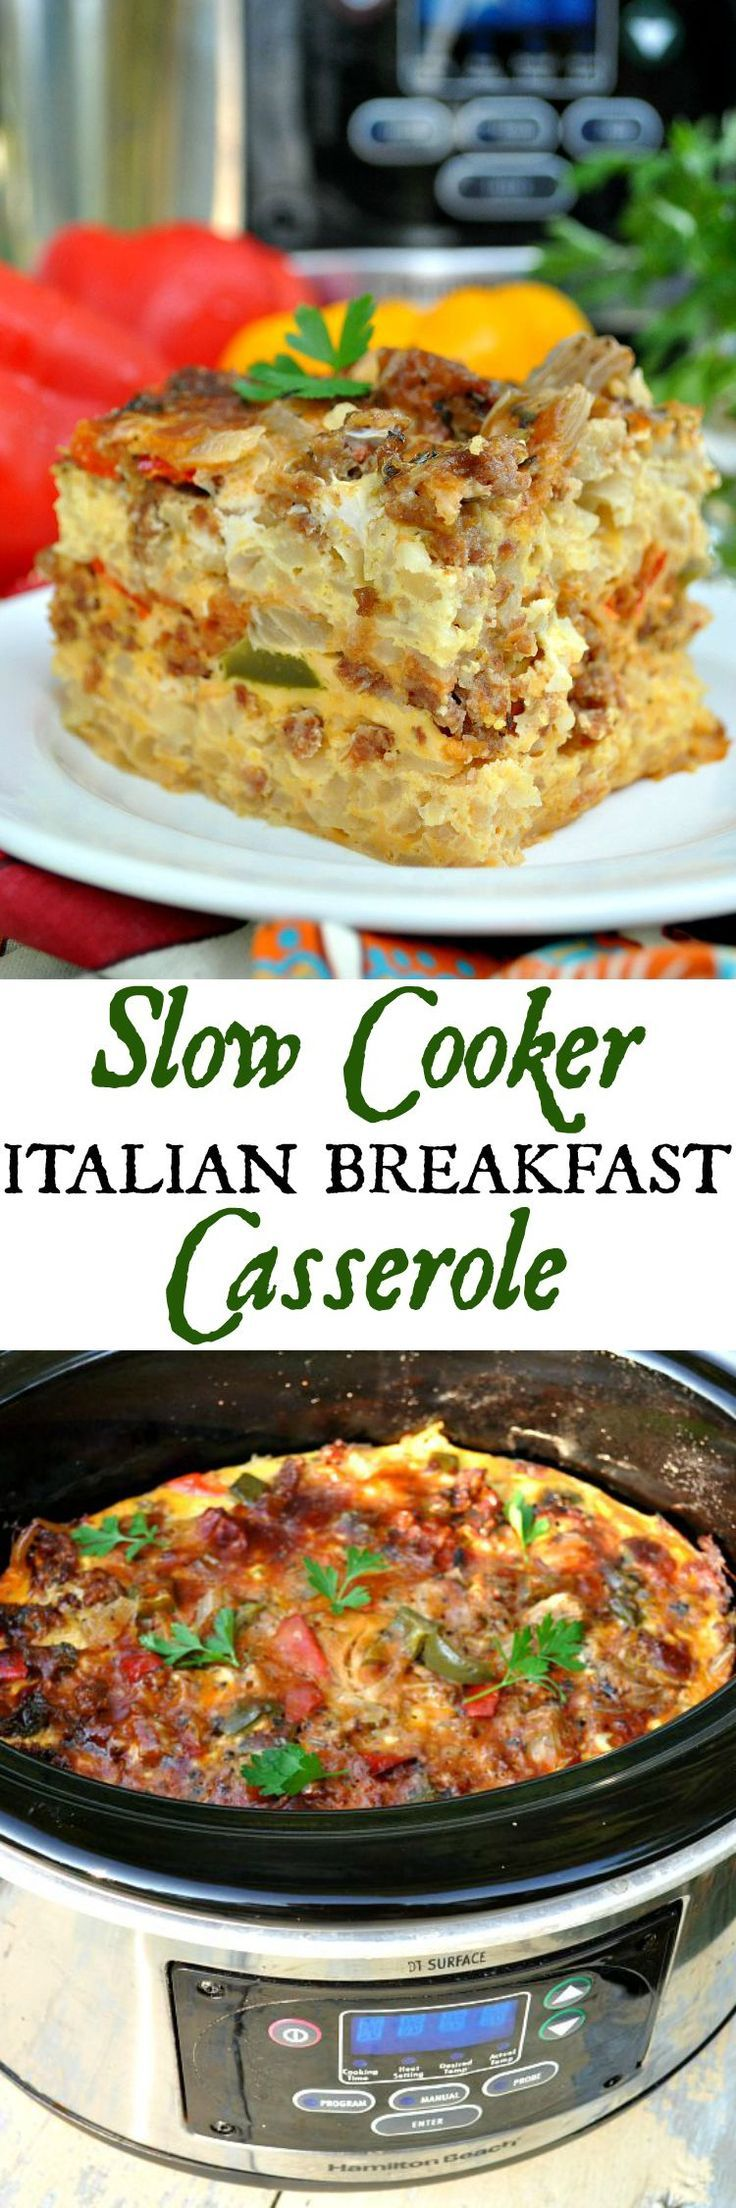 With layers of hash brown potatoes, eggs, cheese, Italian sausage, herbs, and veggies, this Slow Cooker Italian Breakfast Casserole is a total game changer! It cooks in your Crock Pot overnight so that you can wake up to a satisfying and easy breakfast in the morning! #SimplyPotatoes #ad